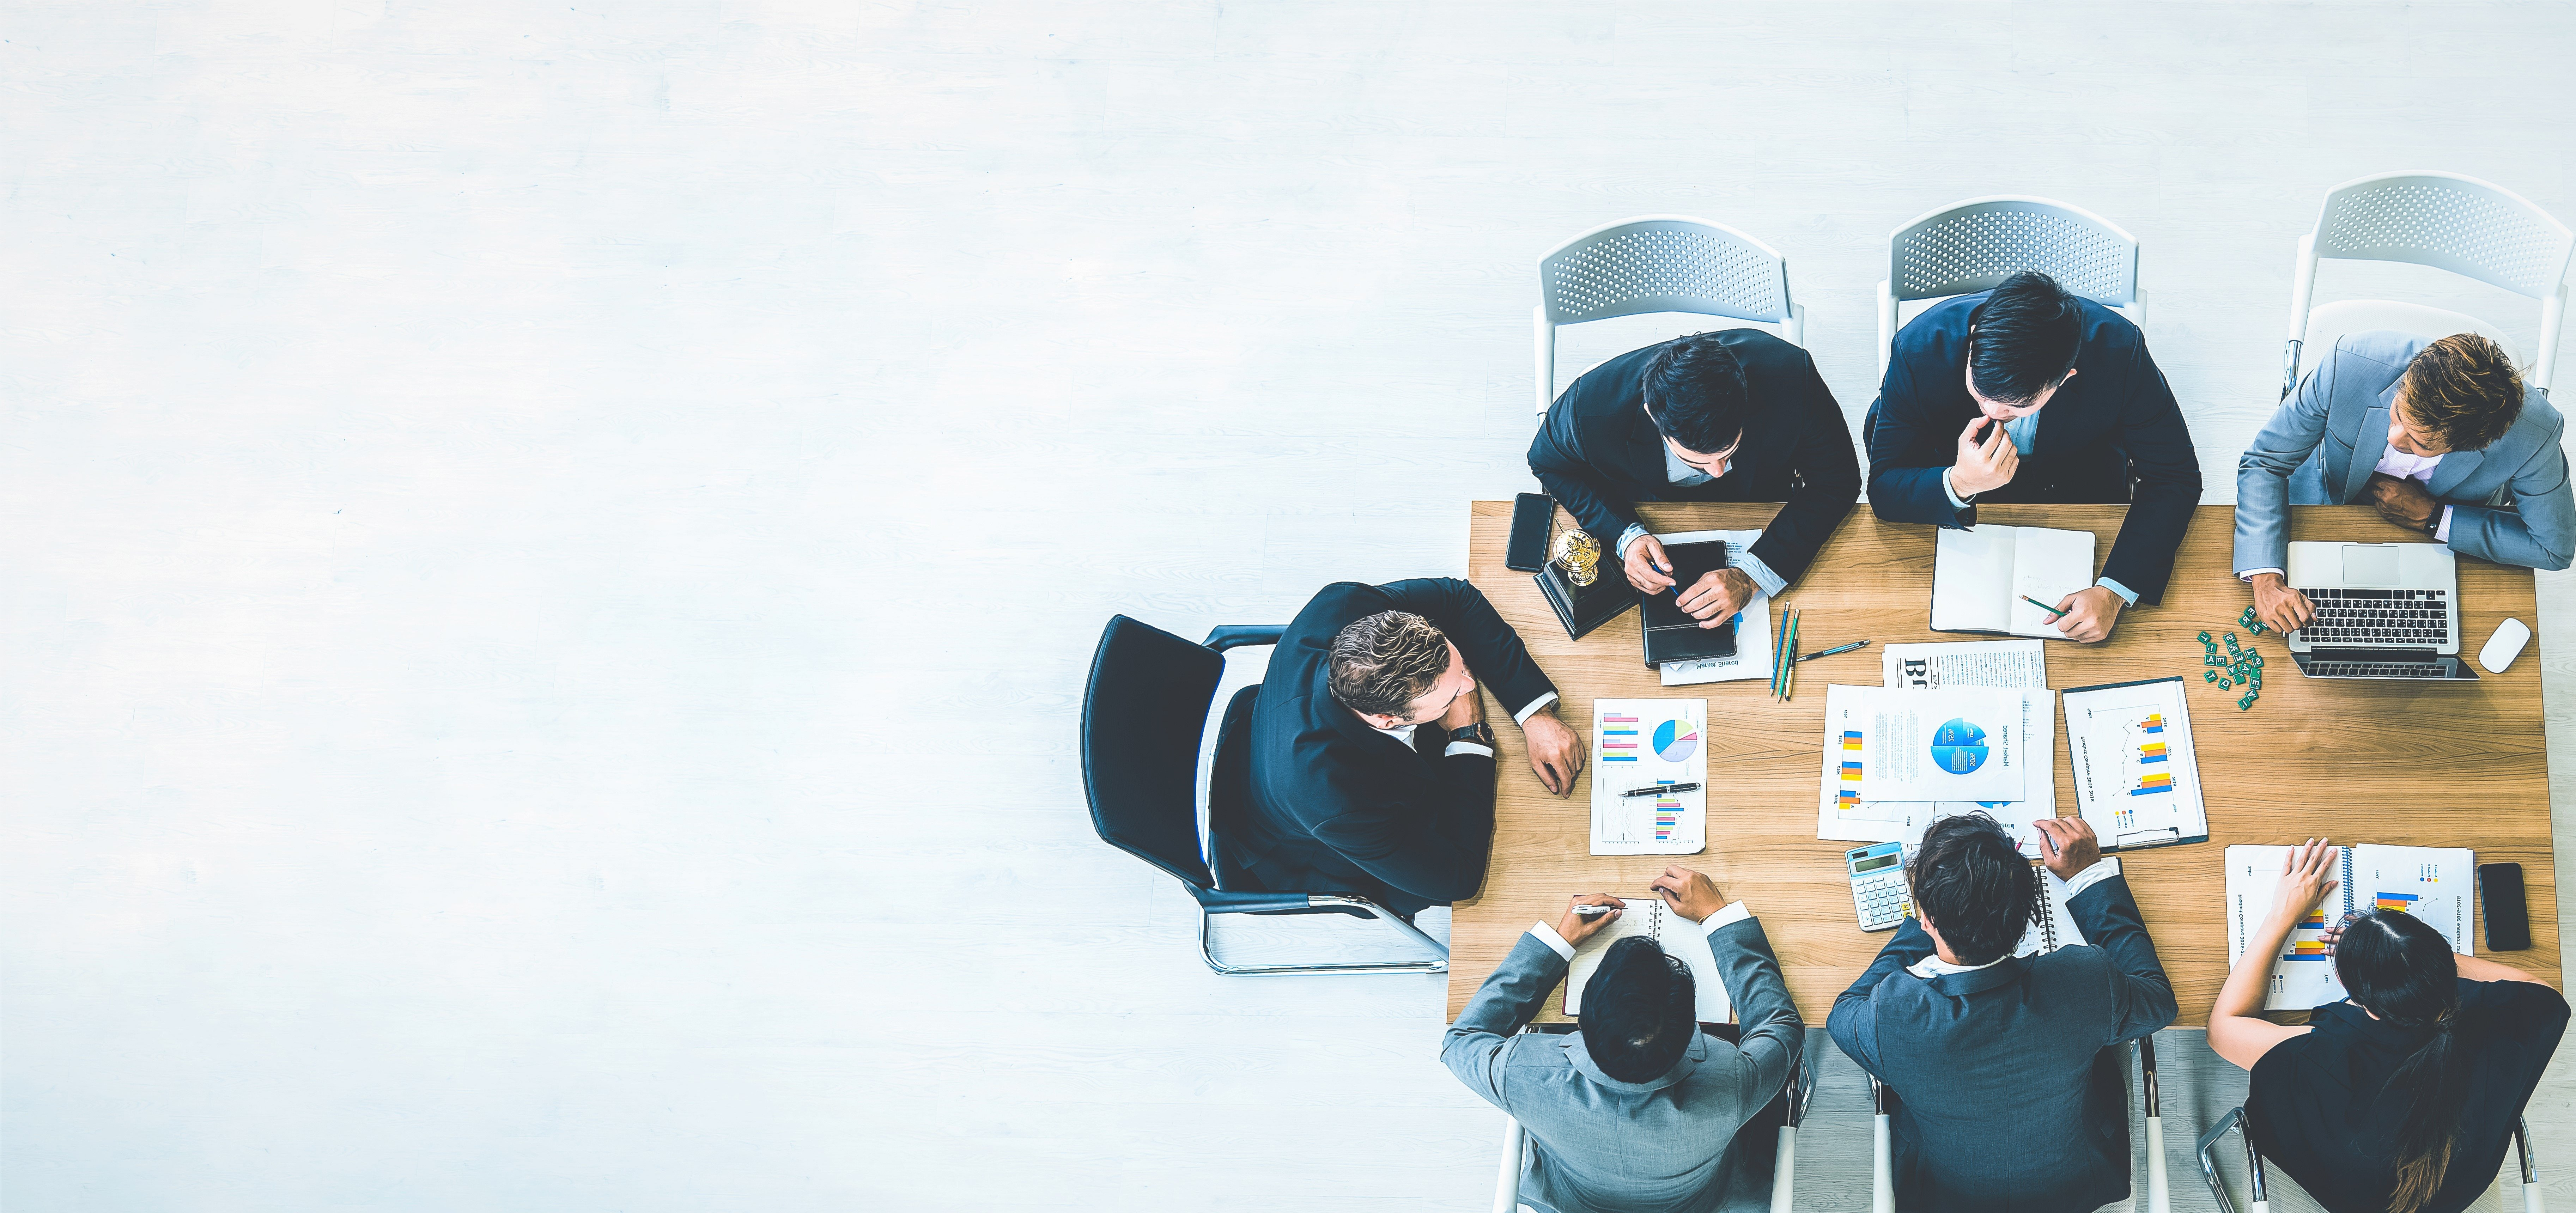 Business professionals working together and brainstorming